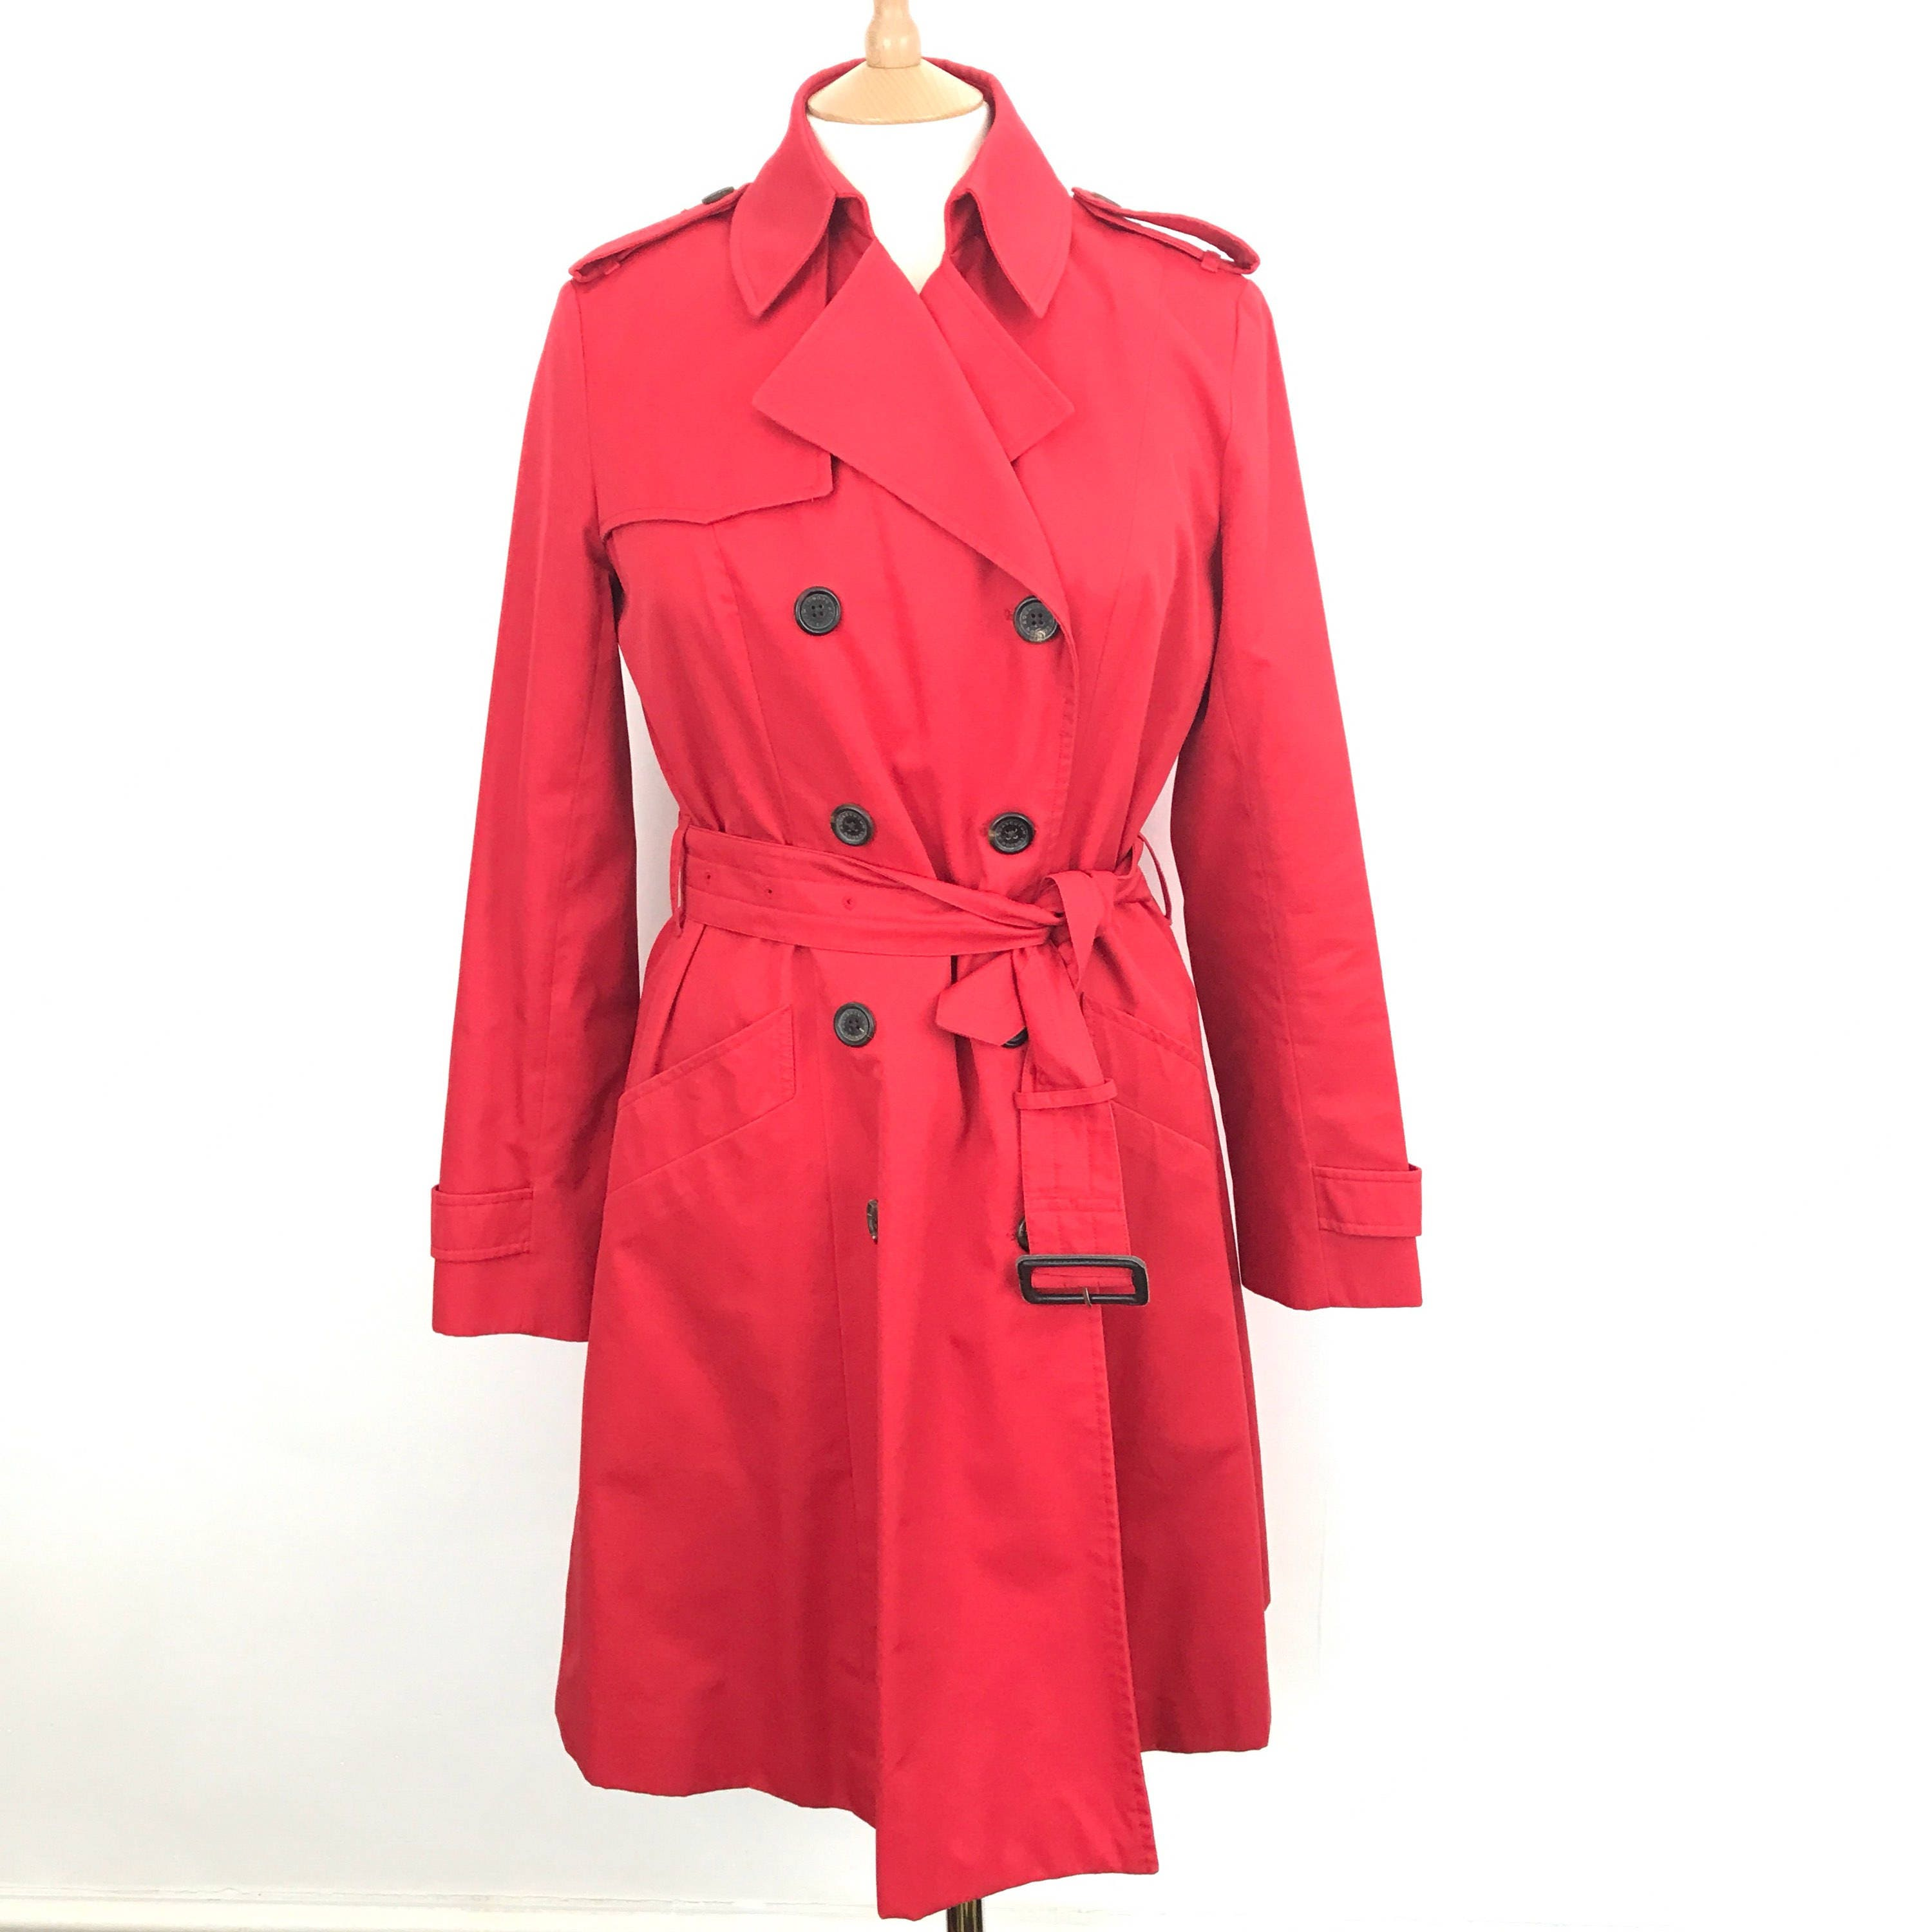 8e7ecacd722a0 Aquascutum mac red trench coat cotton weight classic macintosh double  breasted scarlet vintage raincoat designer UK 12